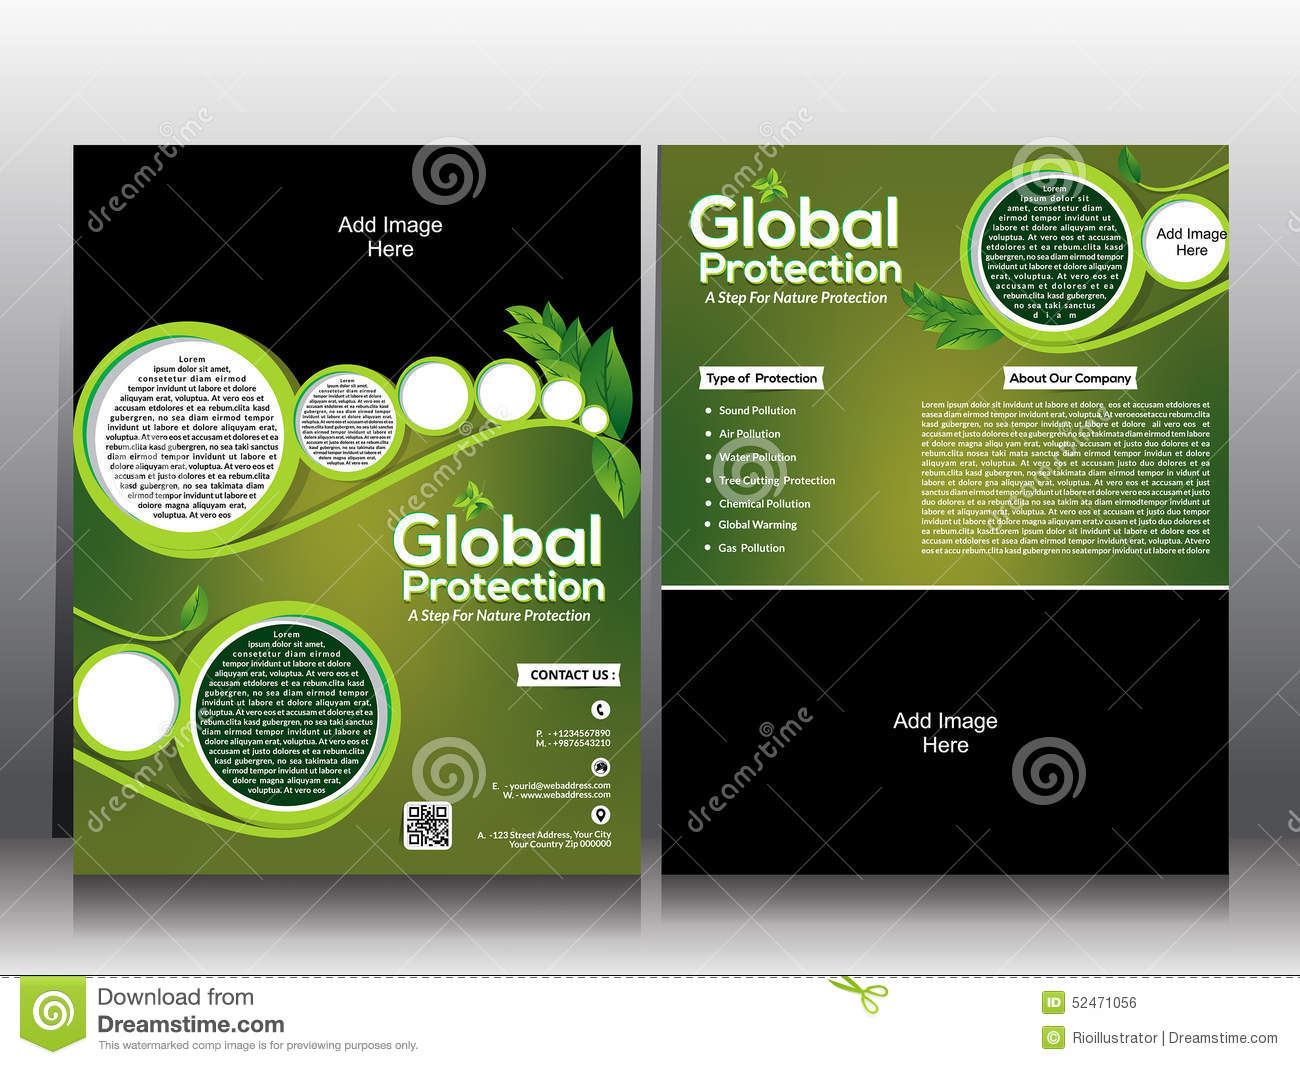 Eco Flyer Amp Global Wamring Brochure Template Design Stock